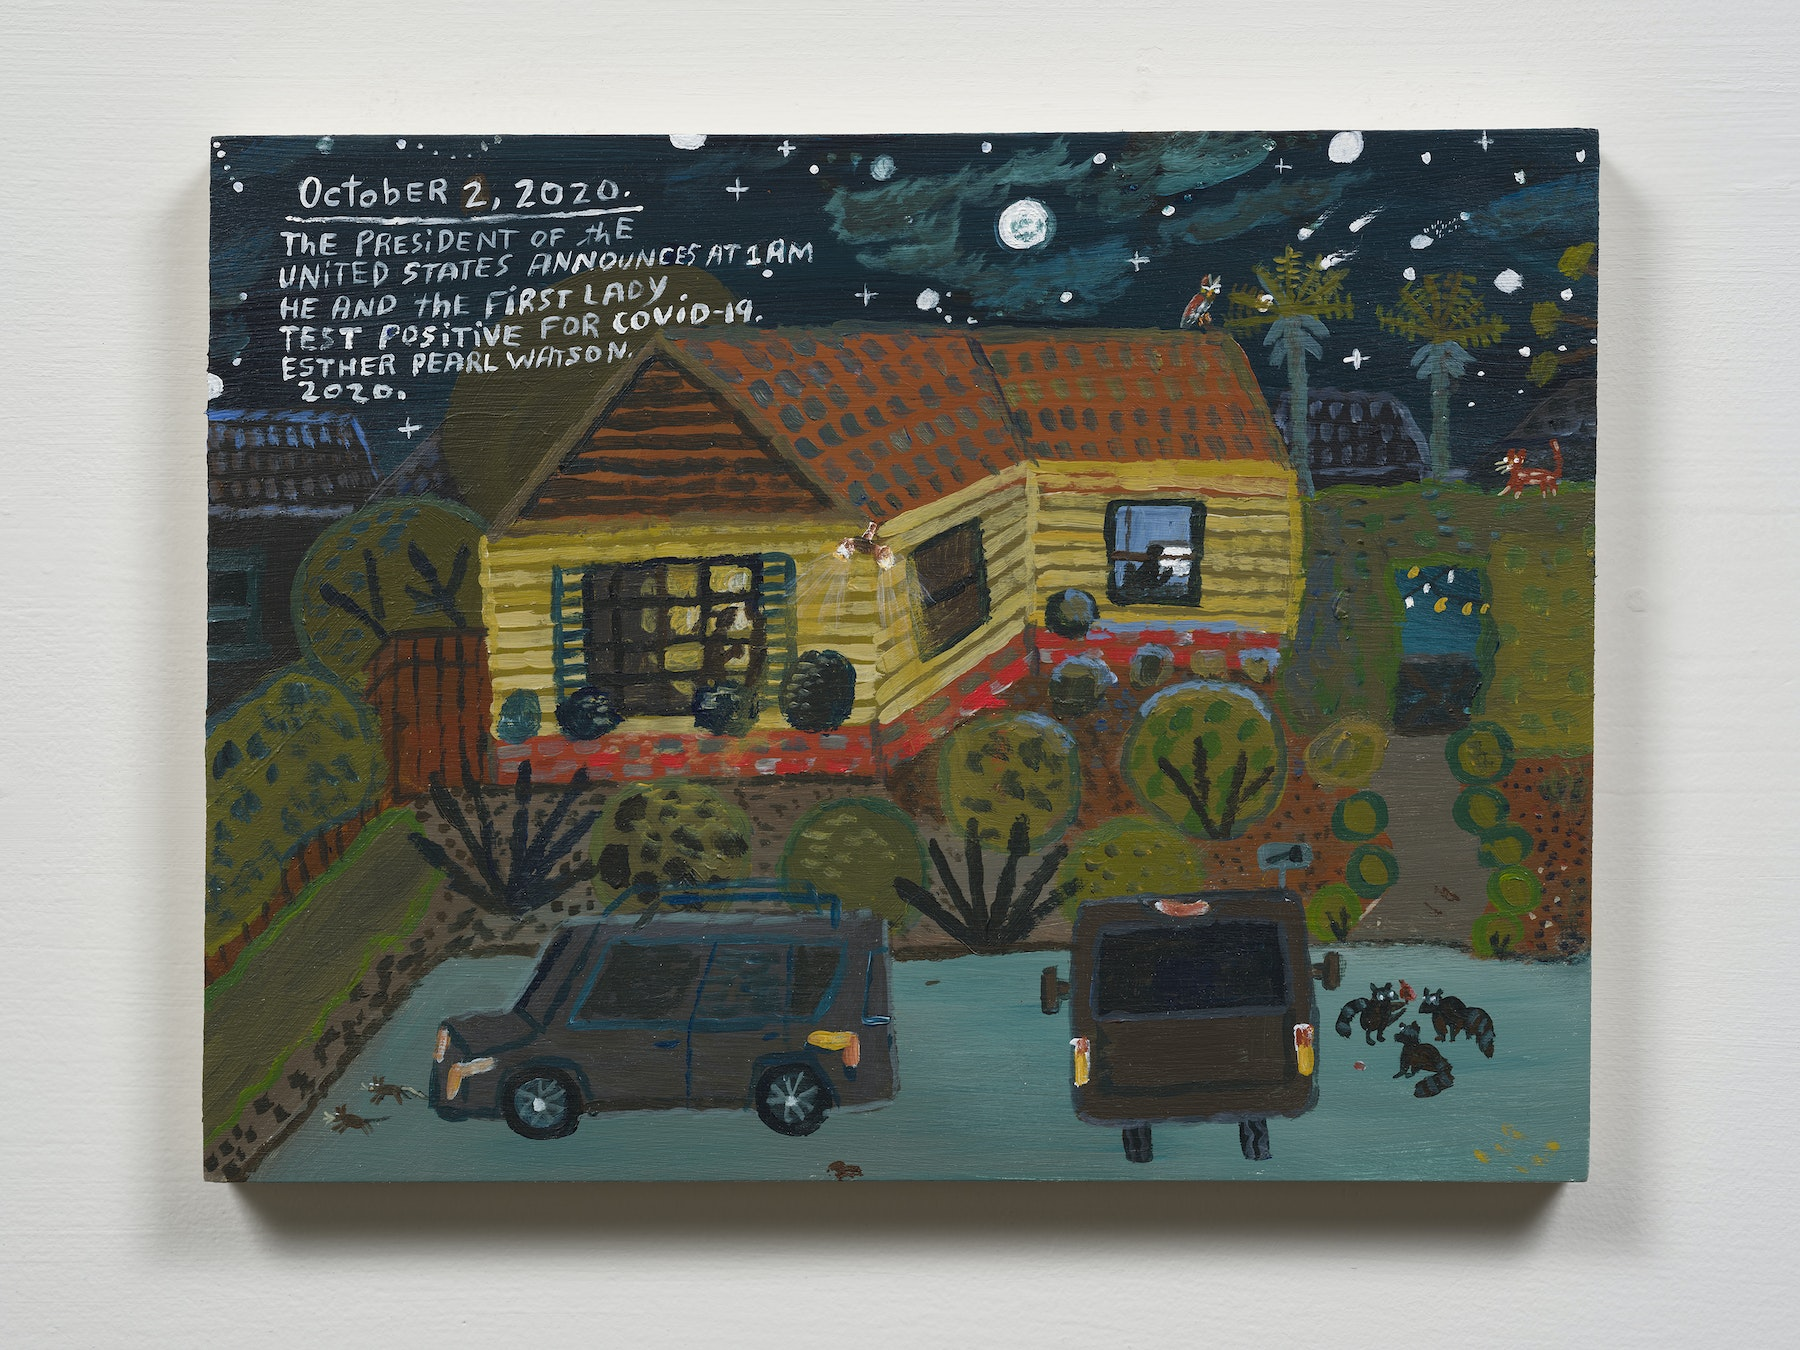 """Esther Pearl Watson """"October 2, President and First Lady test Positive,"""" 2020 Acrylic with pencil on panel 9 x 12"""" [HxW] (22.86 x 30.48 cm) Inventory #EPW347 Courtesy of the artist and Vielmetter Los Angeles Photo credit: Jeff Mclane"""